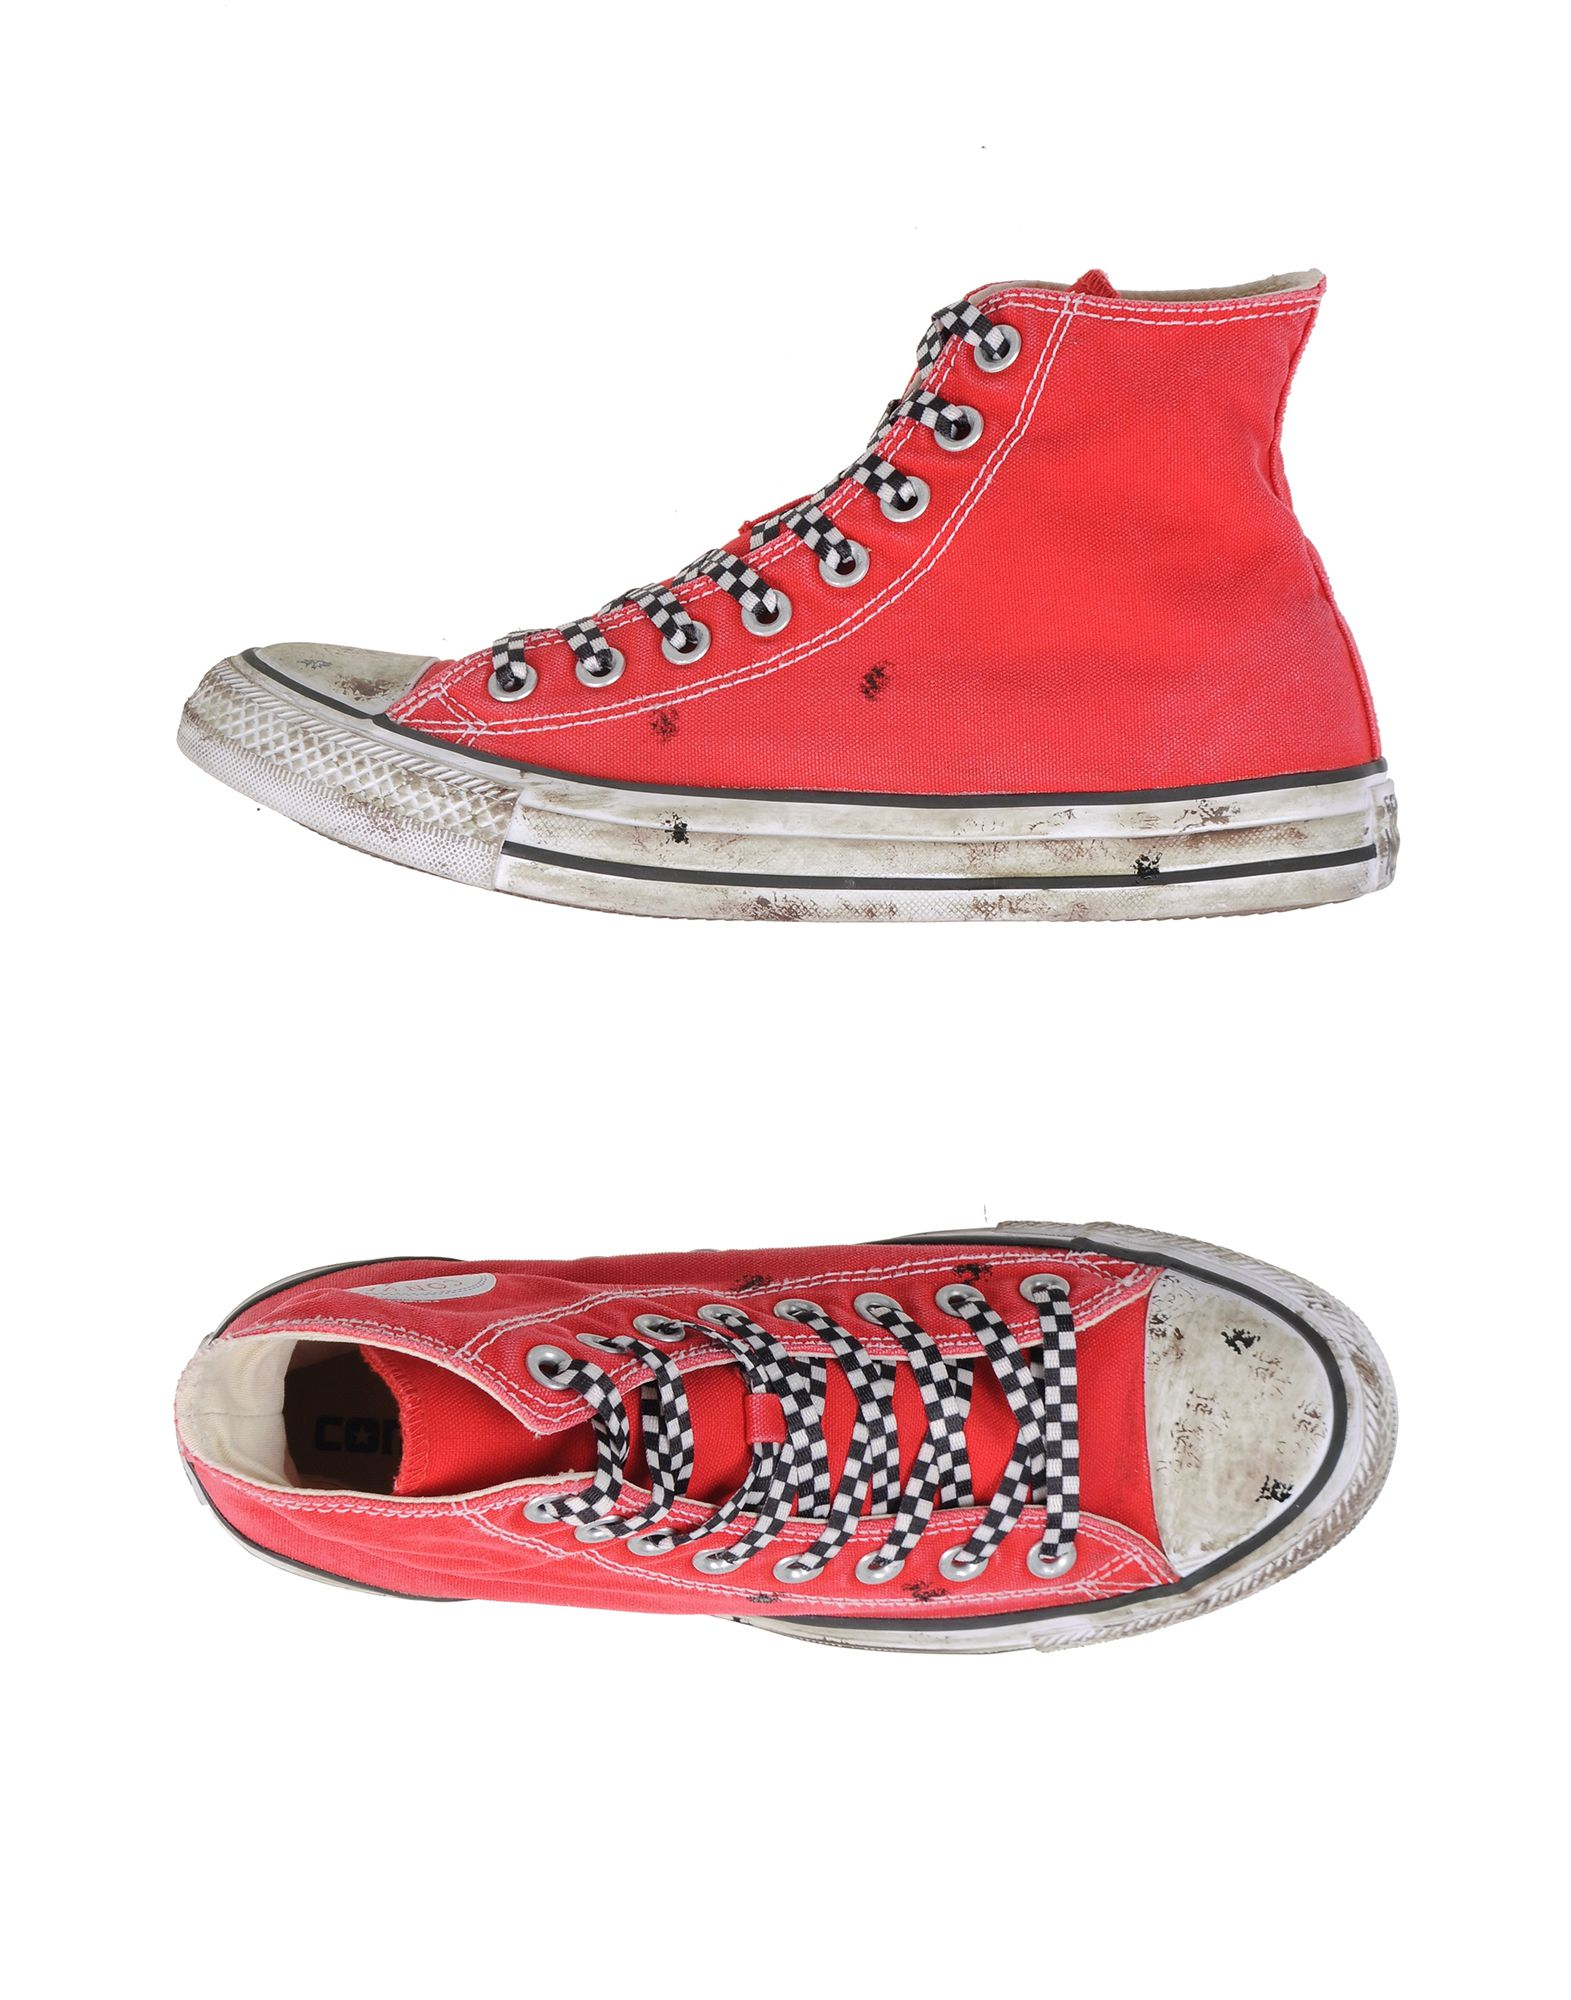 Sneakers Converse Limited Edition All Star Hi Canvas Ltd - Femme - Sneakers Converse Limited Edition sur